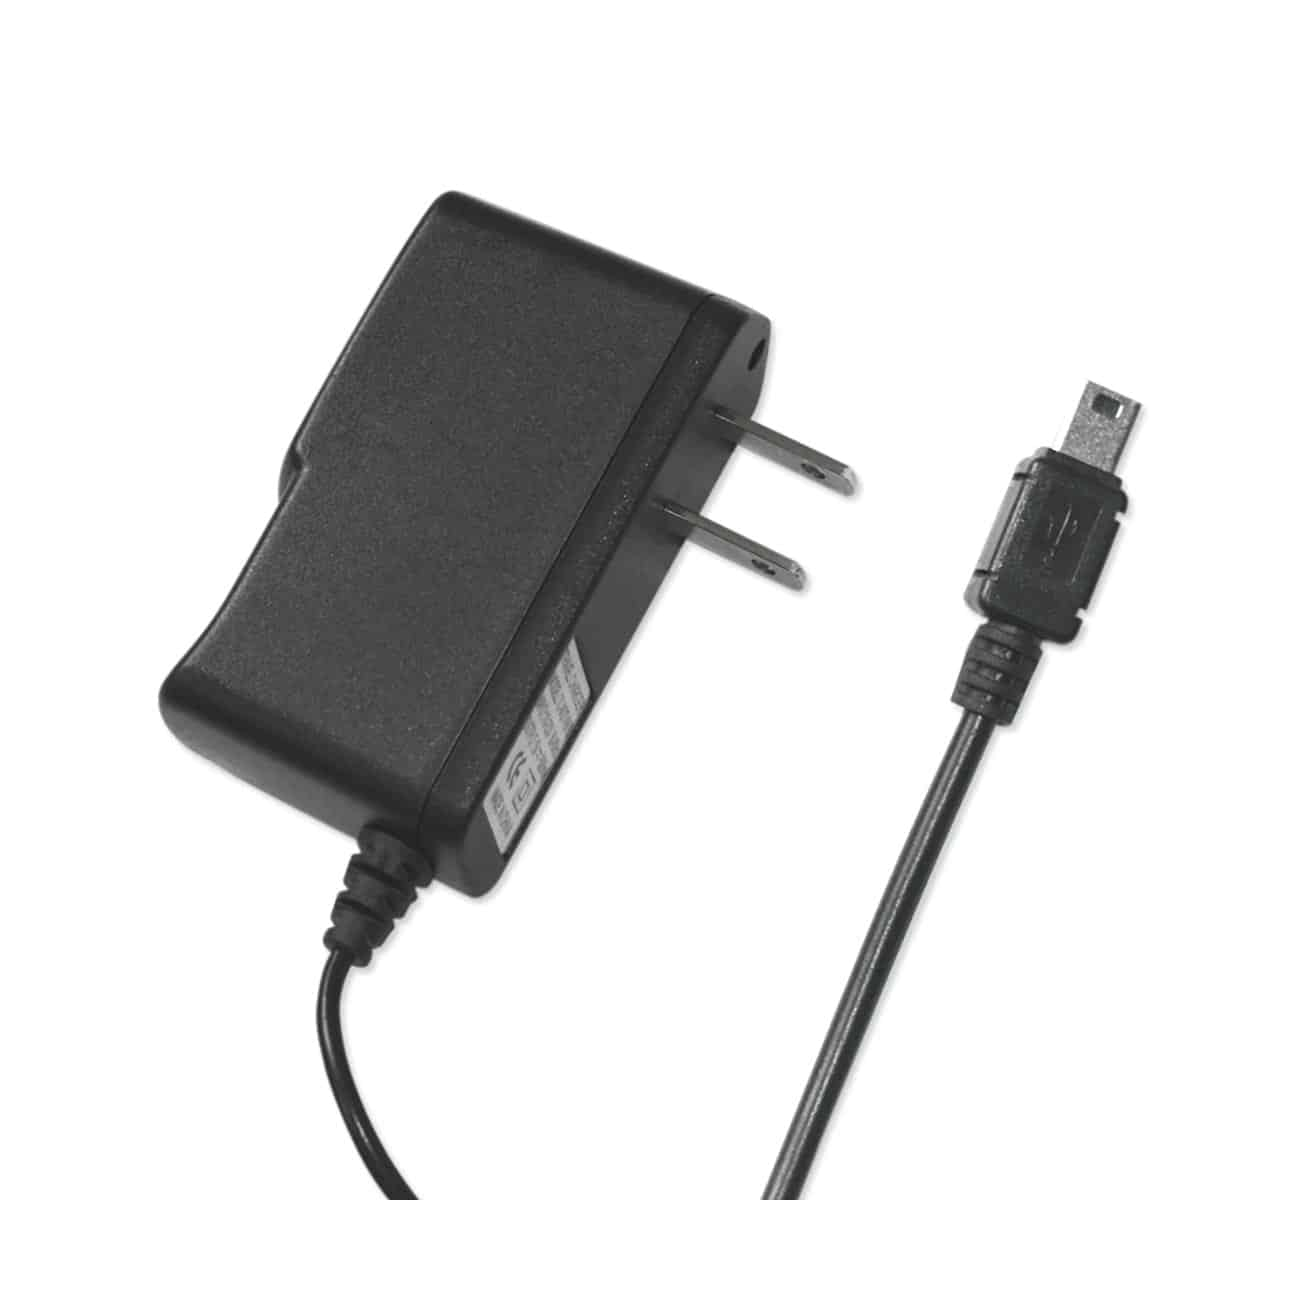 PORTABLE MOTOROLA RAZR V3 USB TRAVEL ADAPTER CHARGER WITH BUILT IN CABLE IN BLACK